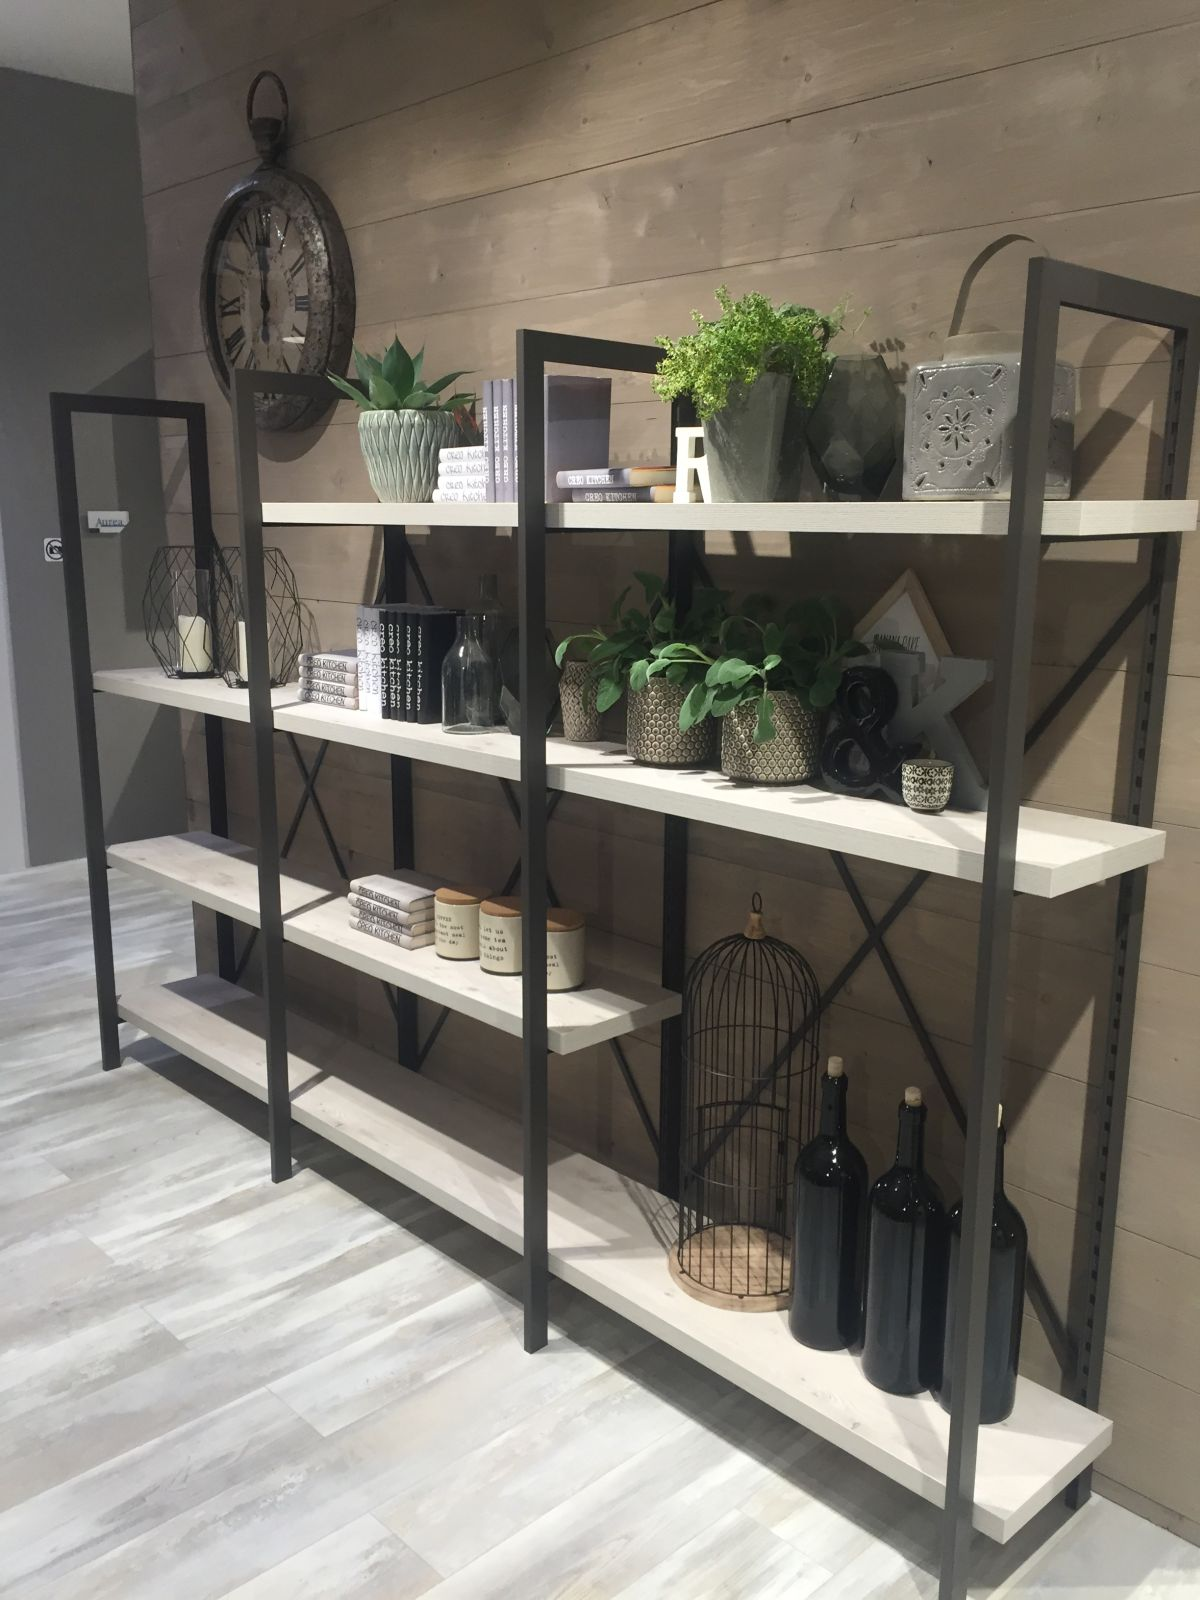 Basic wall unit system storage